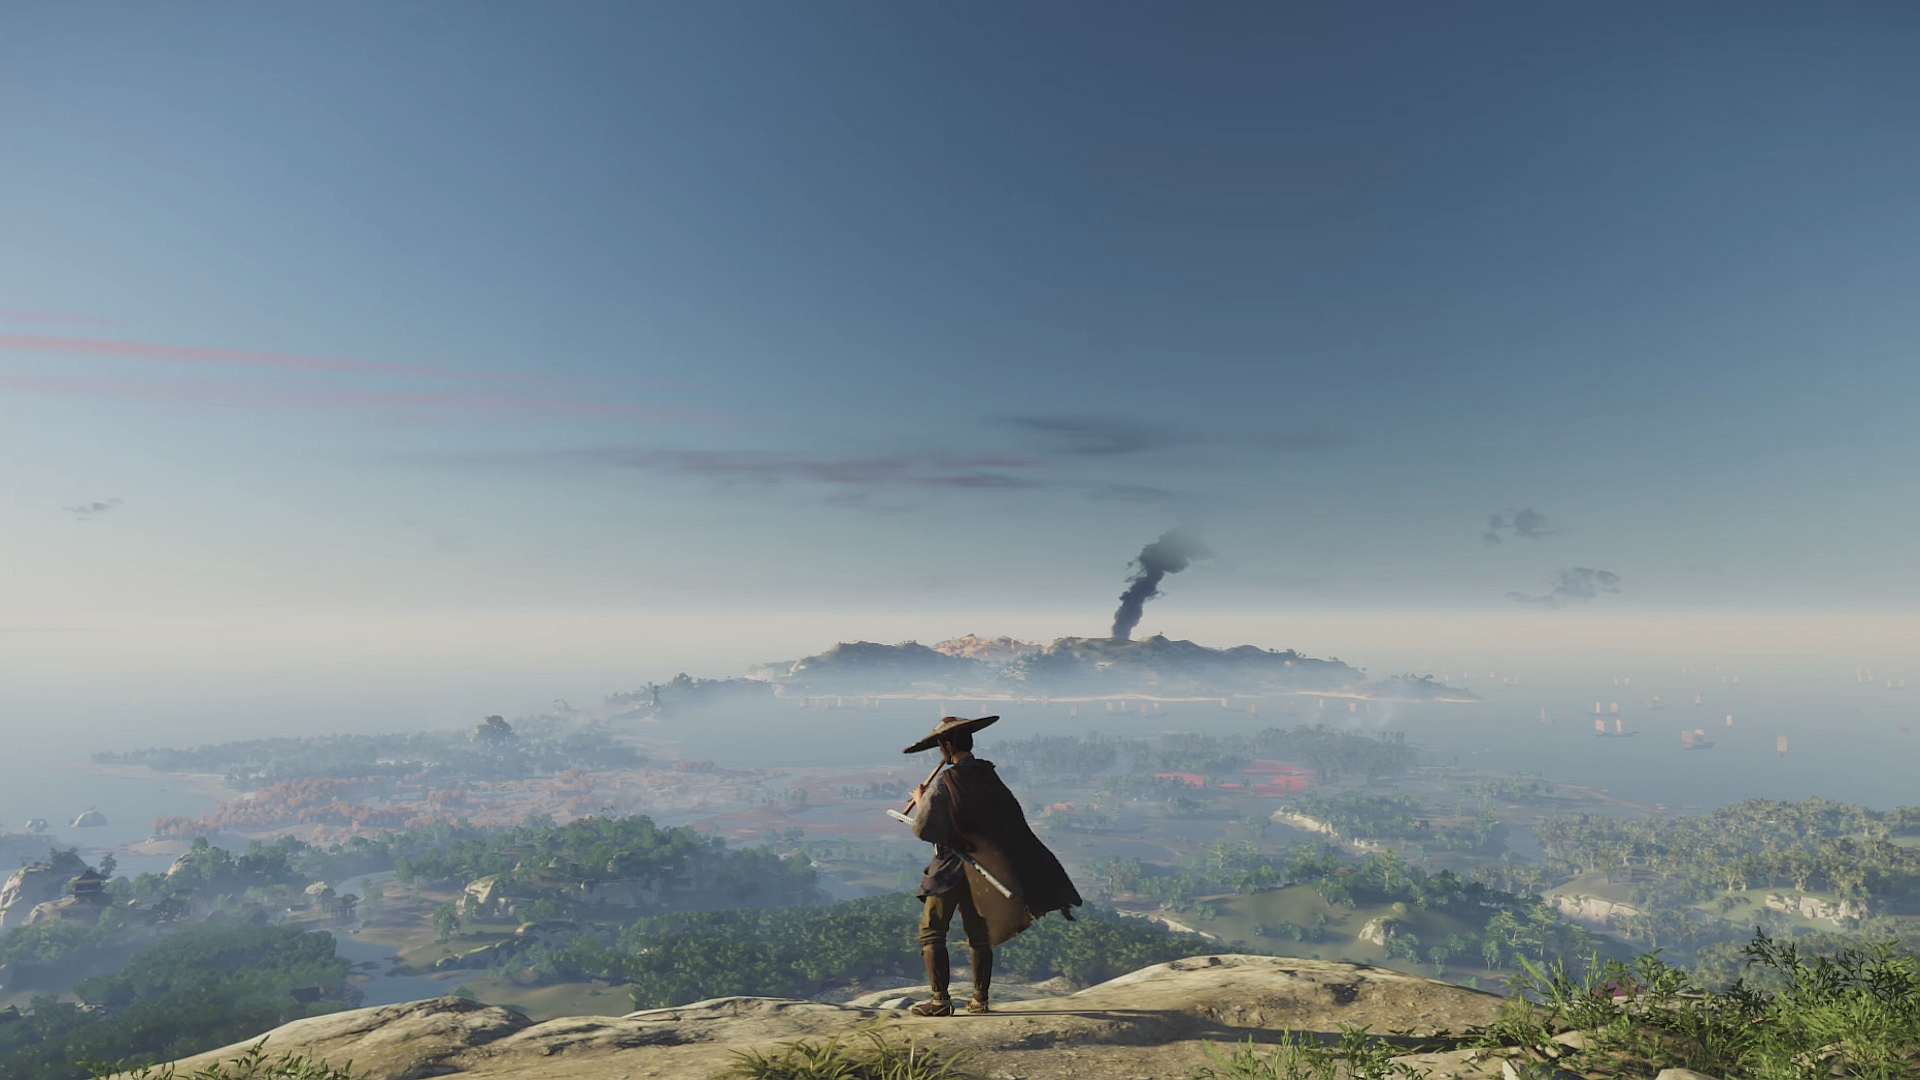 Ghost of Tsushima Art Direction Was Inspired by Zelda and ...Ghost Of Tsushima